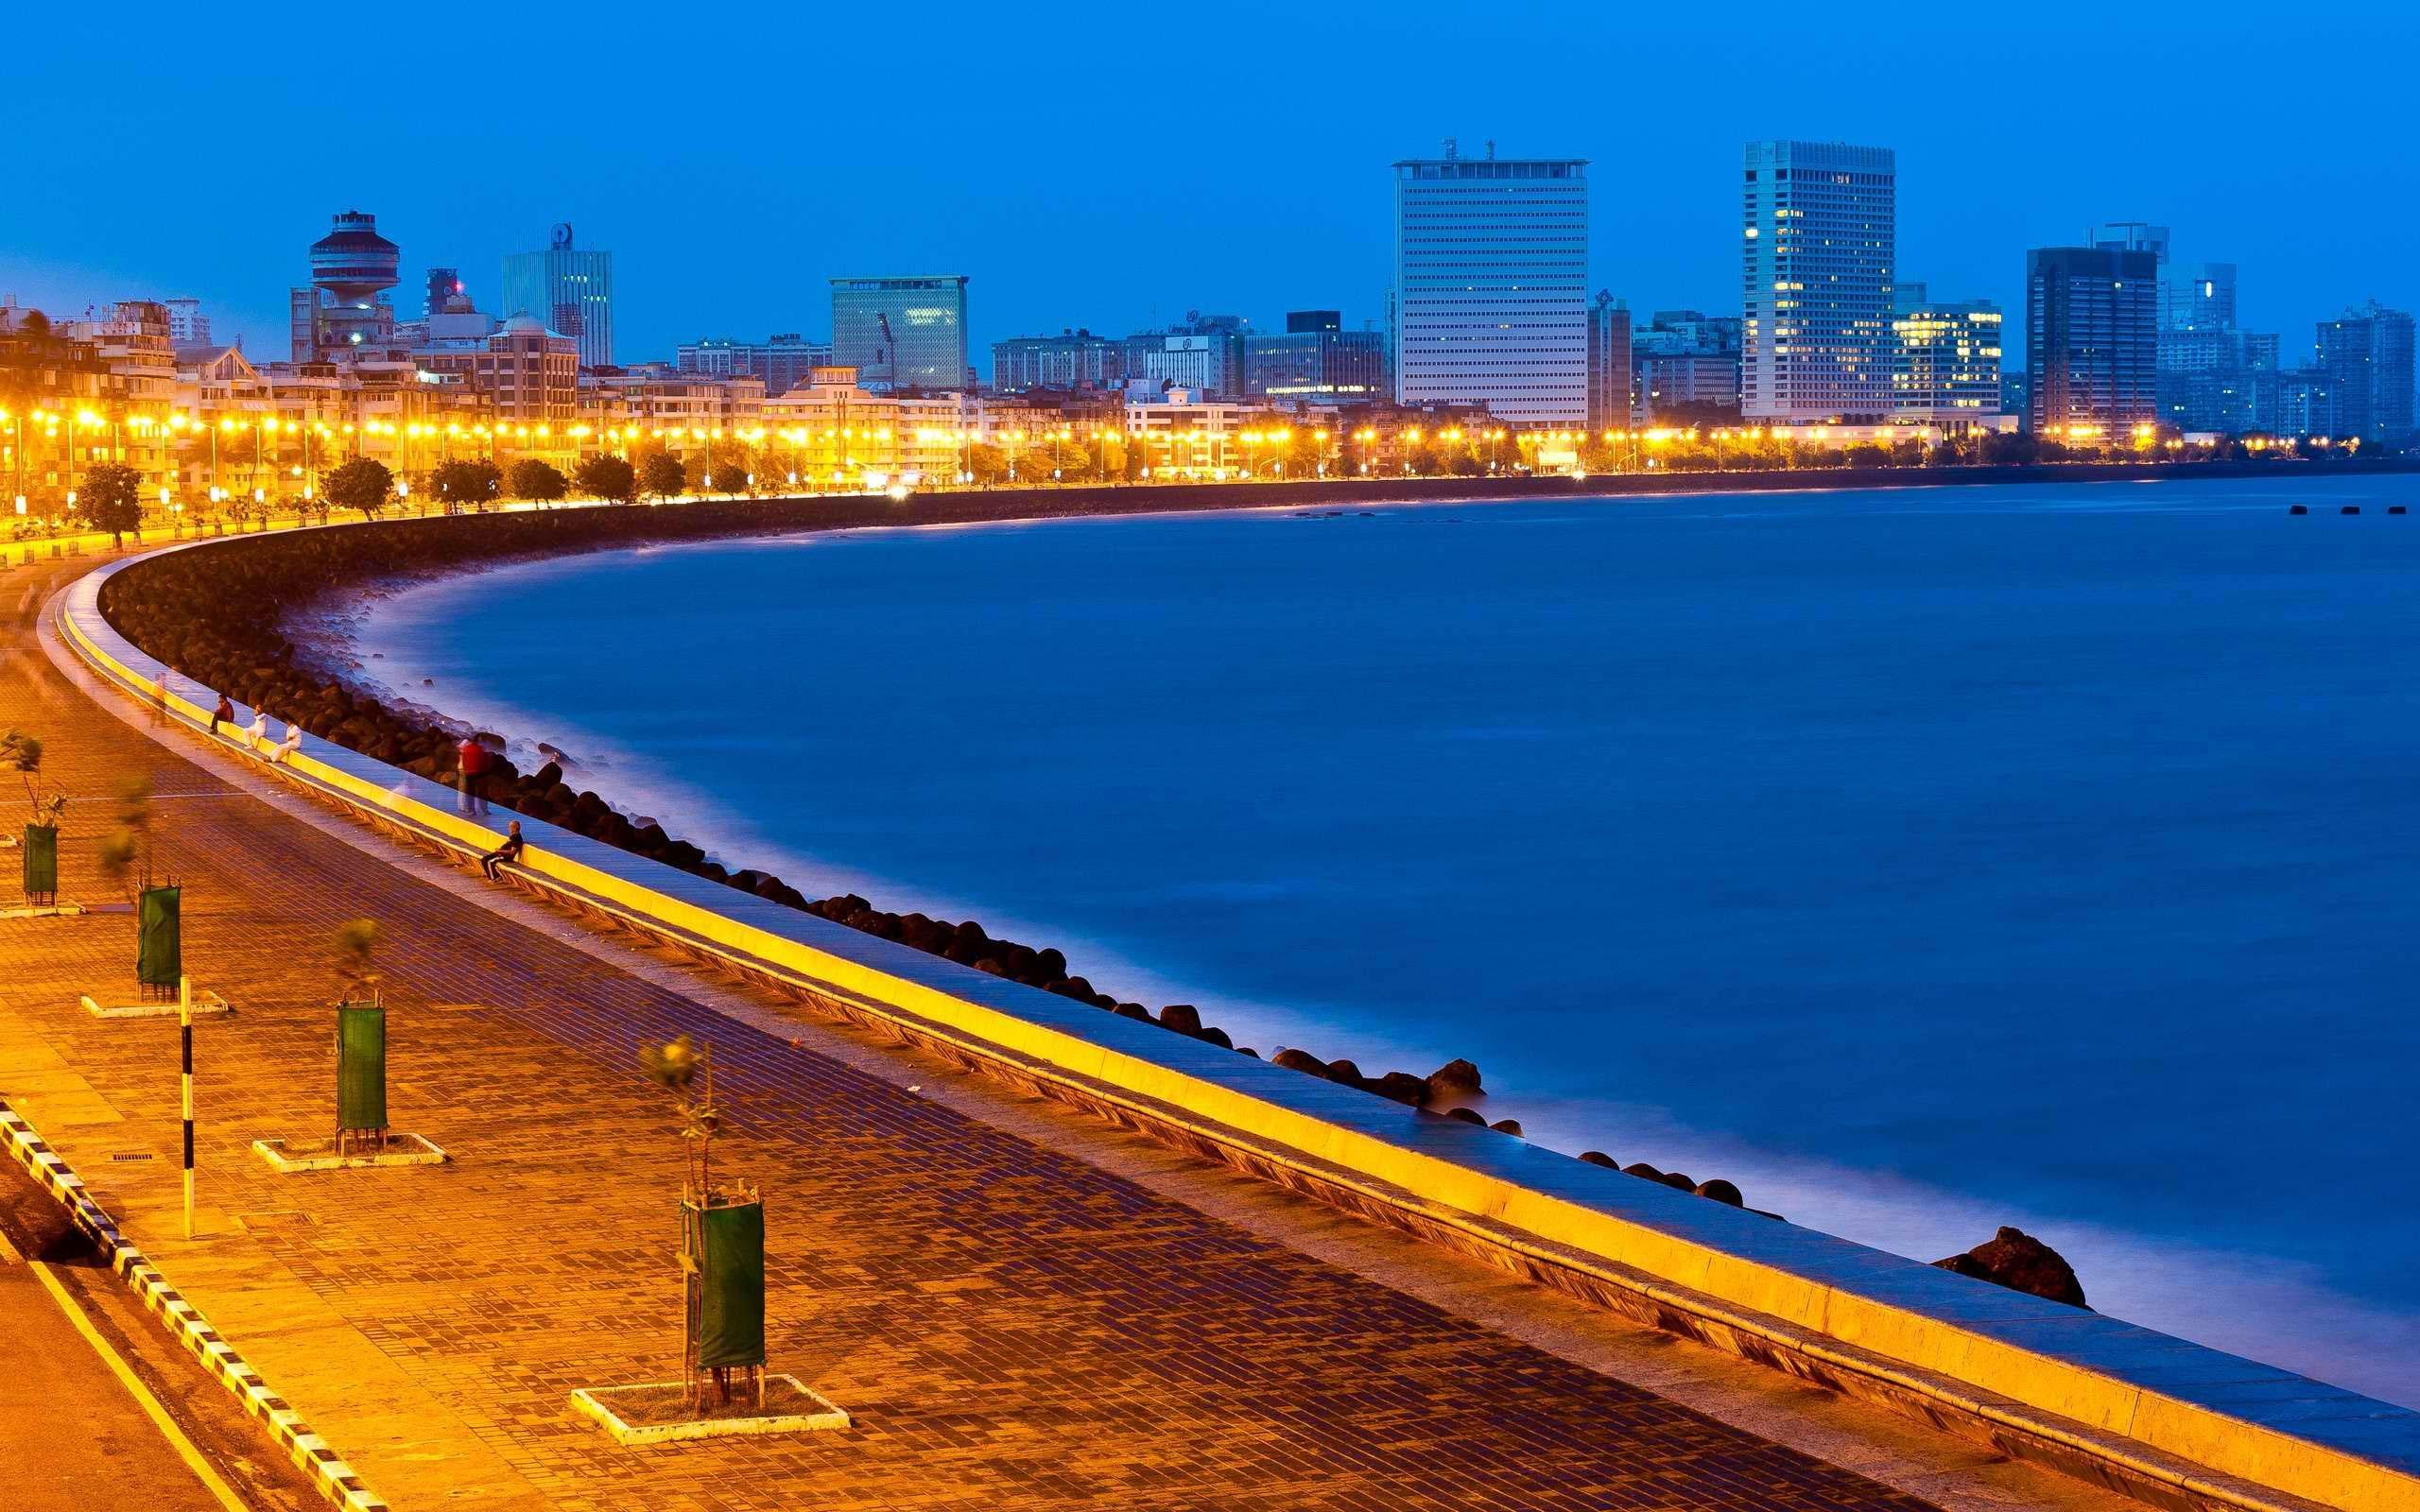 Mumbai Live Wallpaper for Android   APK Download 2560x1600